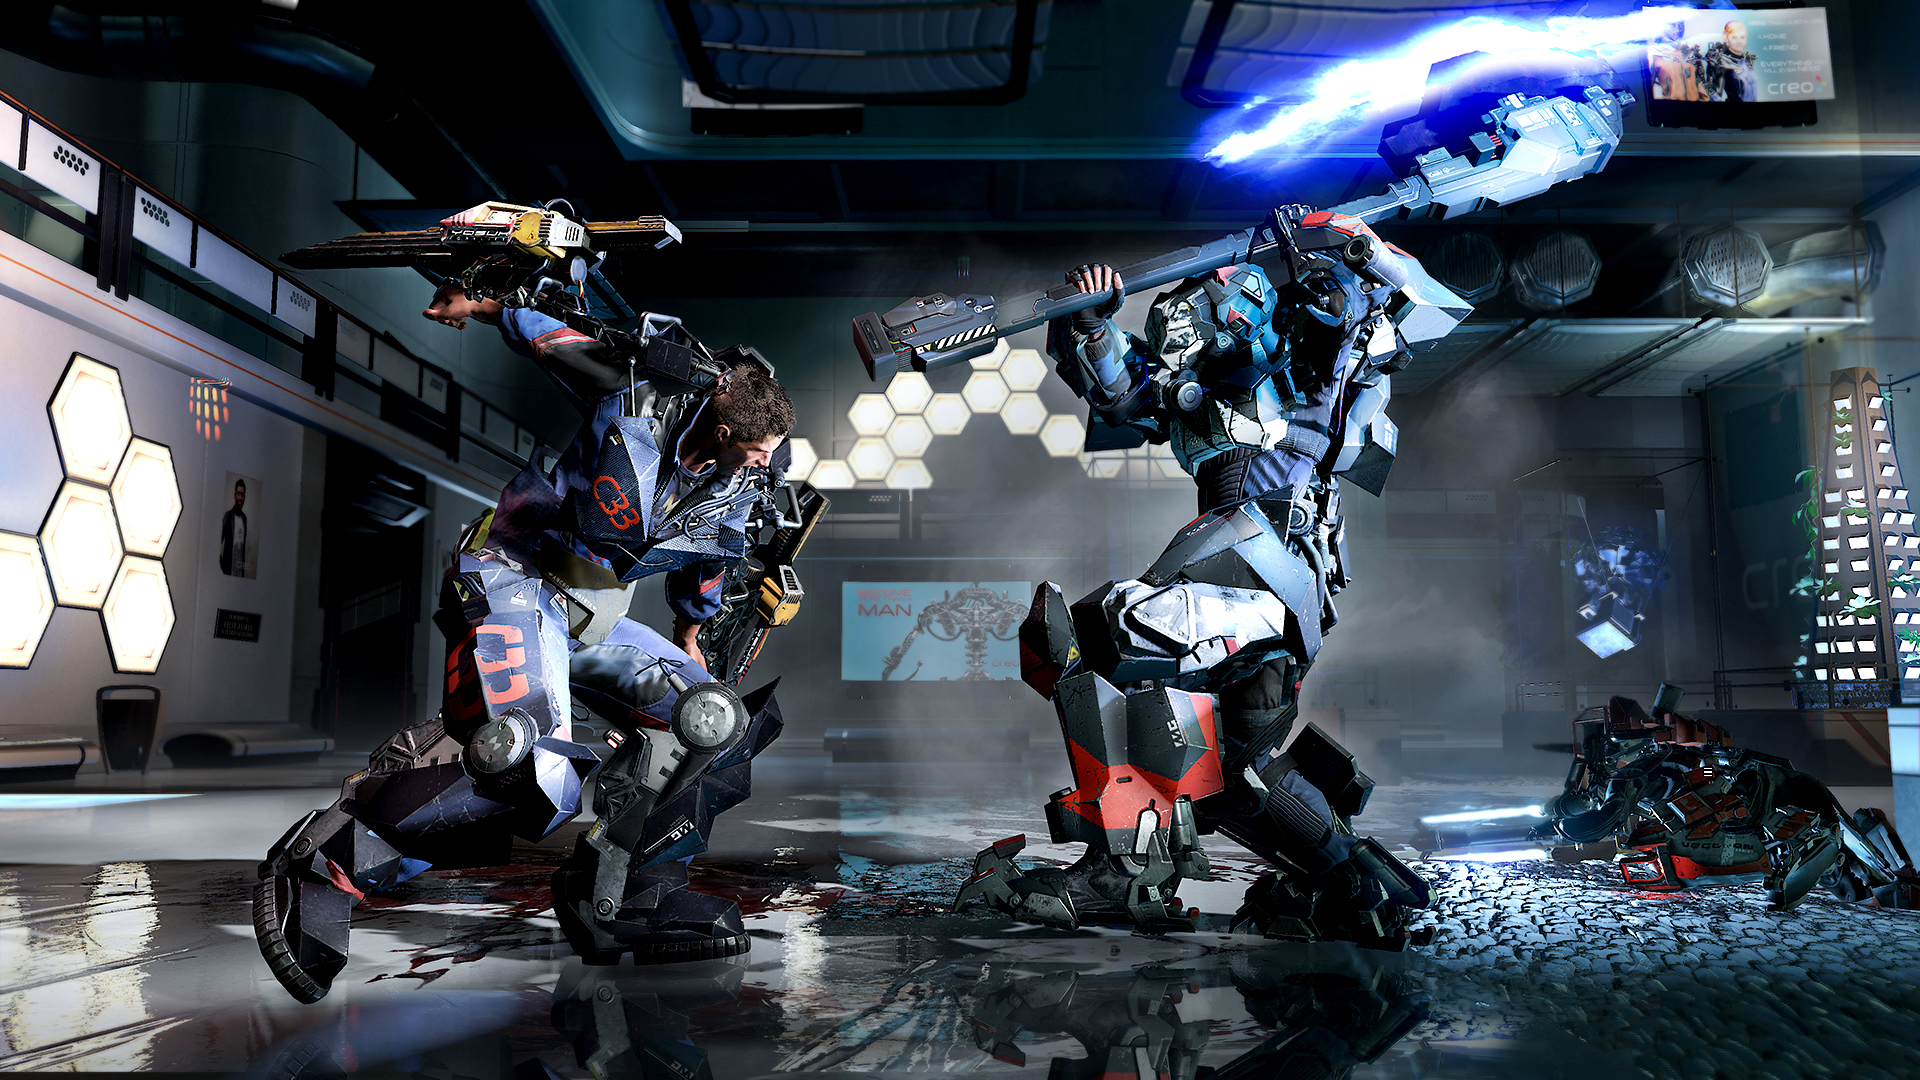 PC deals: The Surge is up to 24% off at launch screenshot